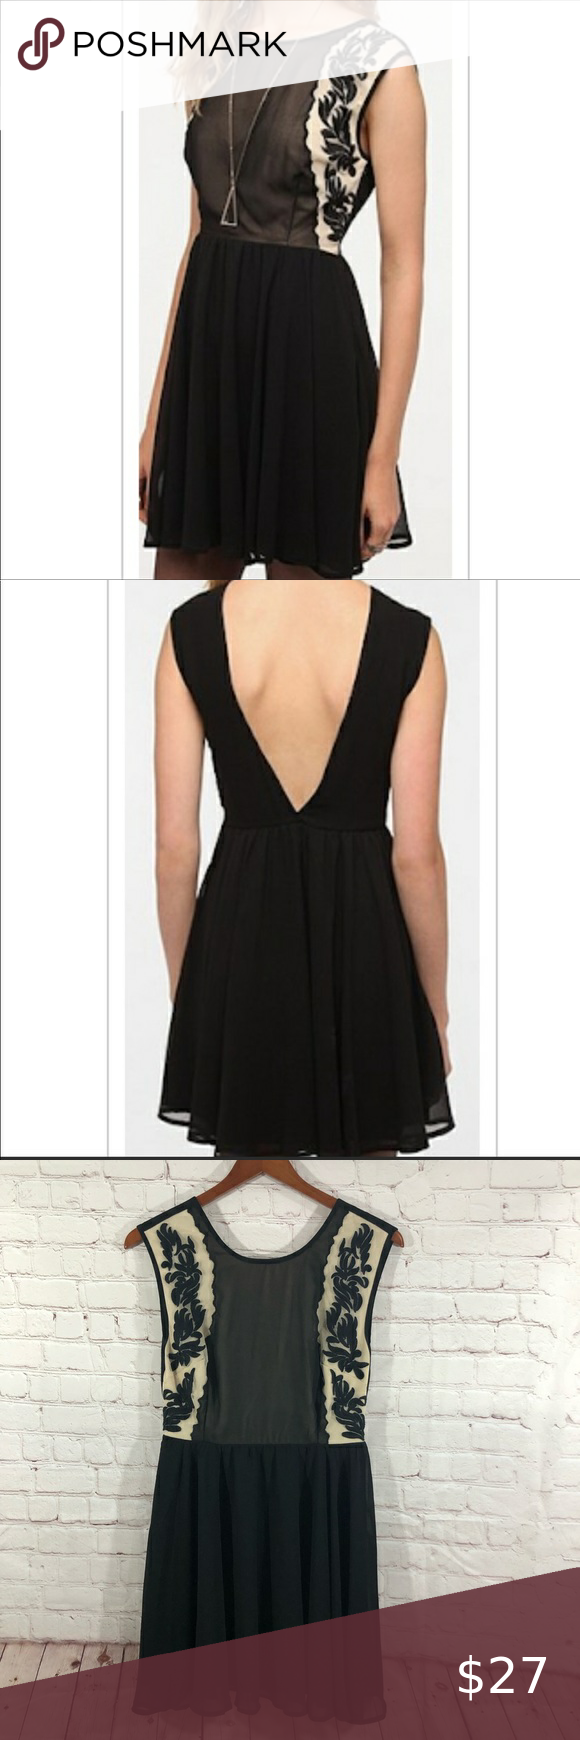 Pins Needles Embroidered Deep V Back Dress In 2021 Little Black Cocktail Dress Green Bodycon Dress Tan Dresses [ 1740 x 580 Pixel ]